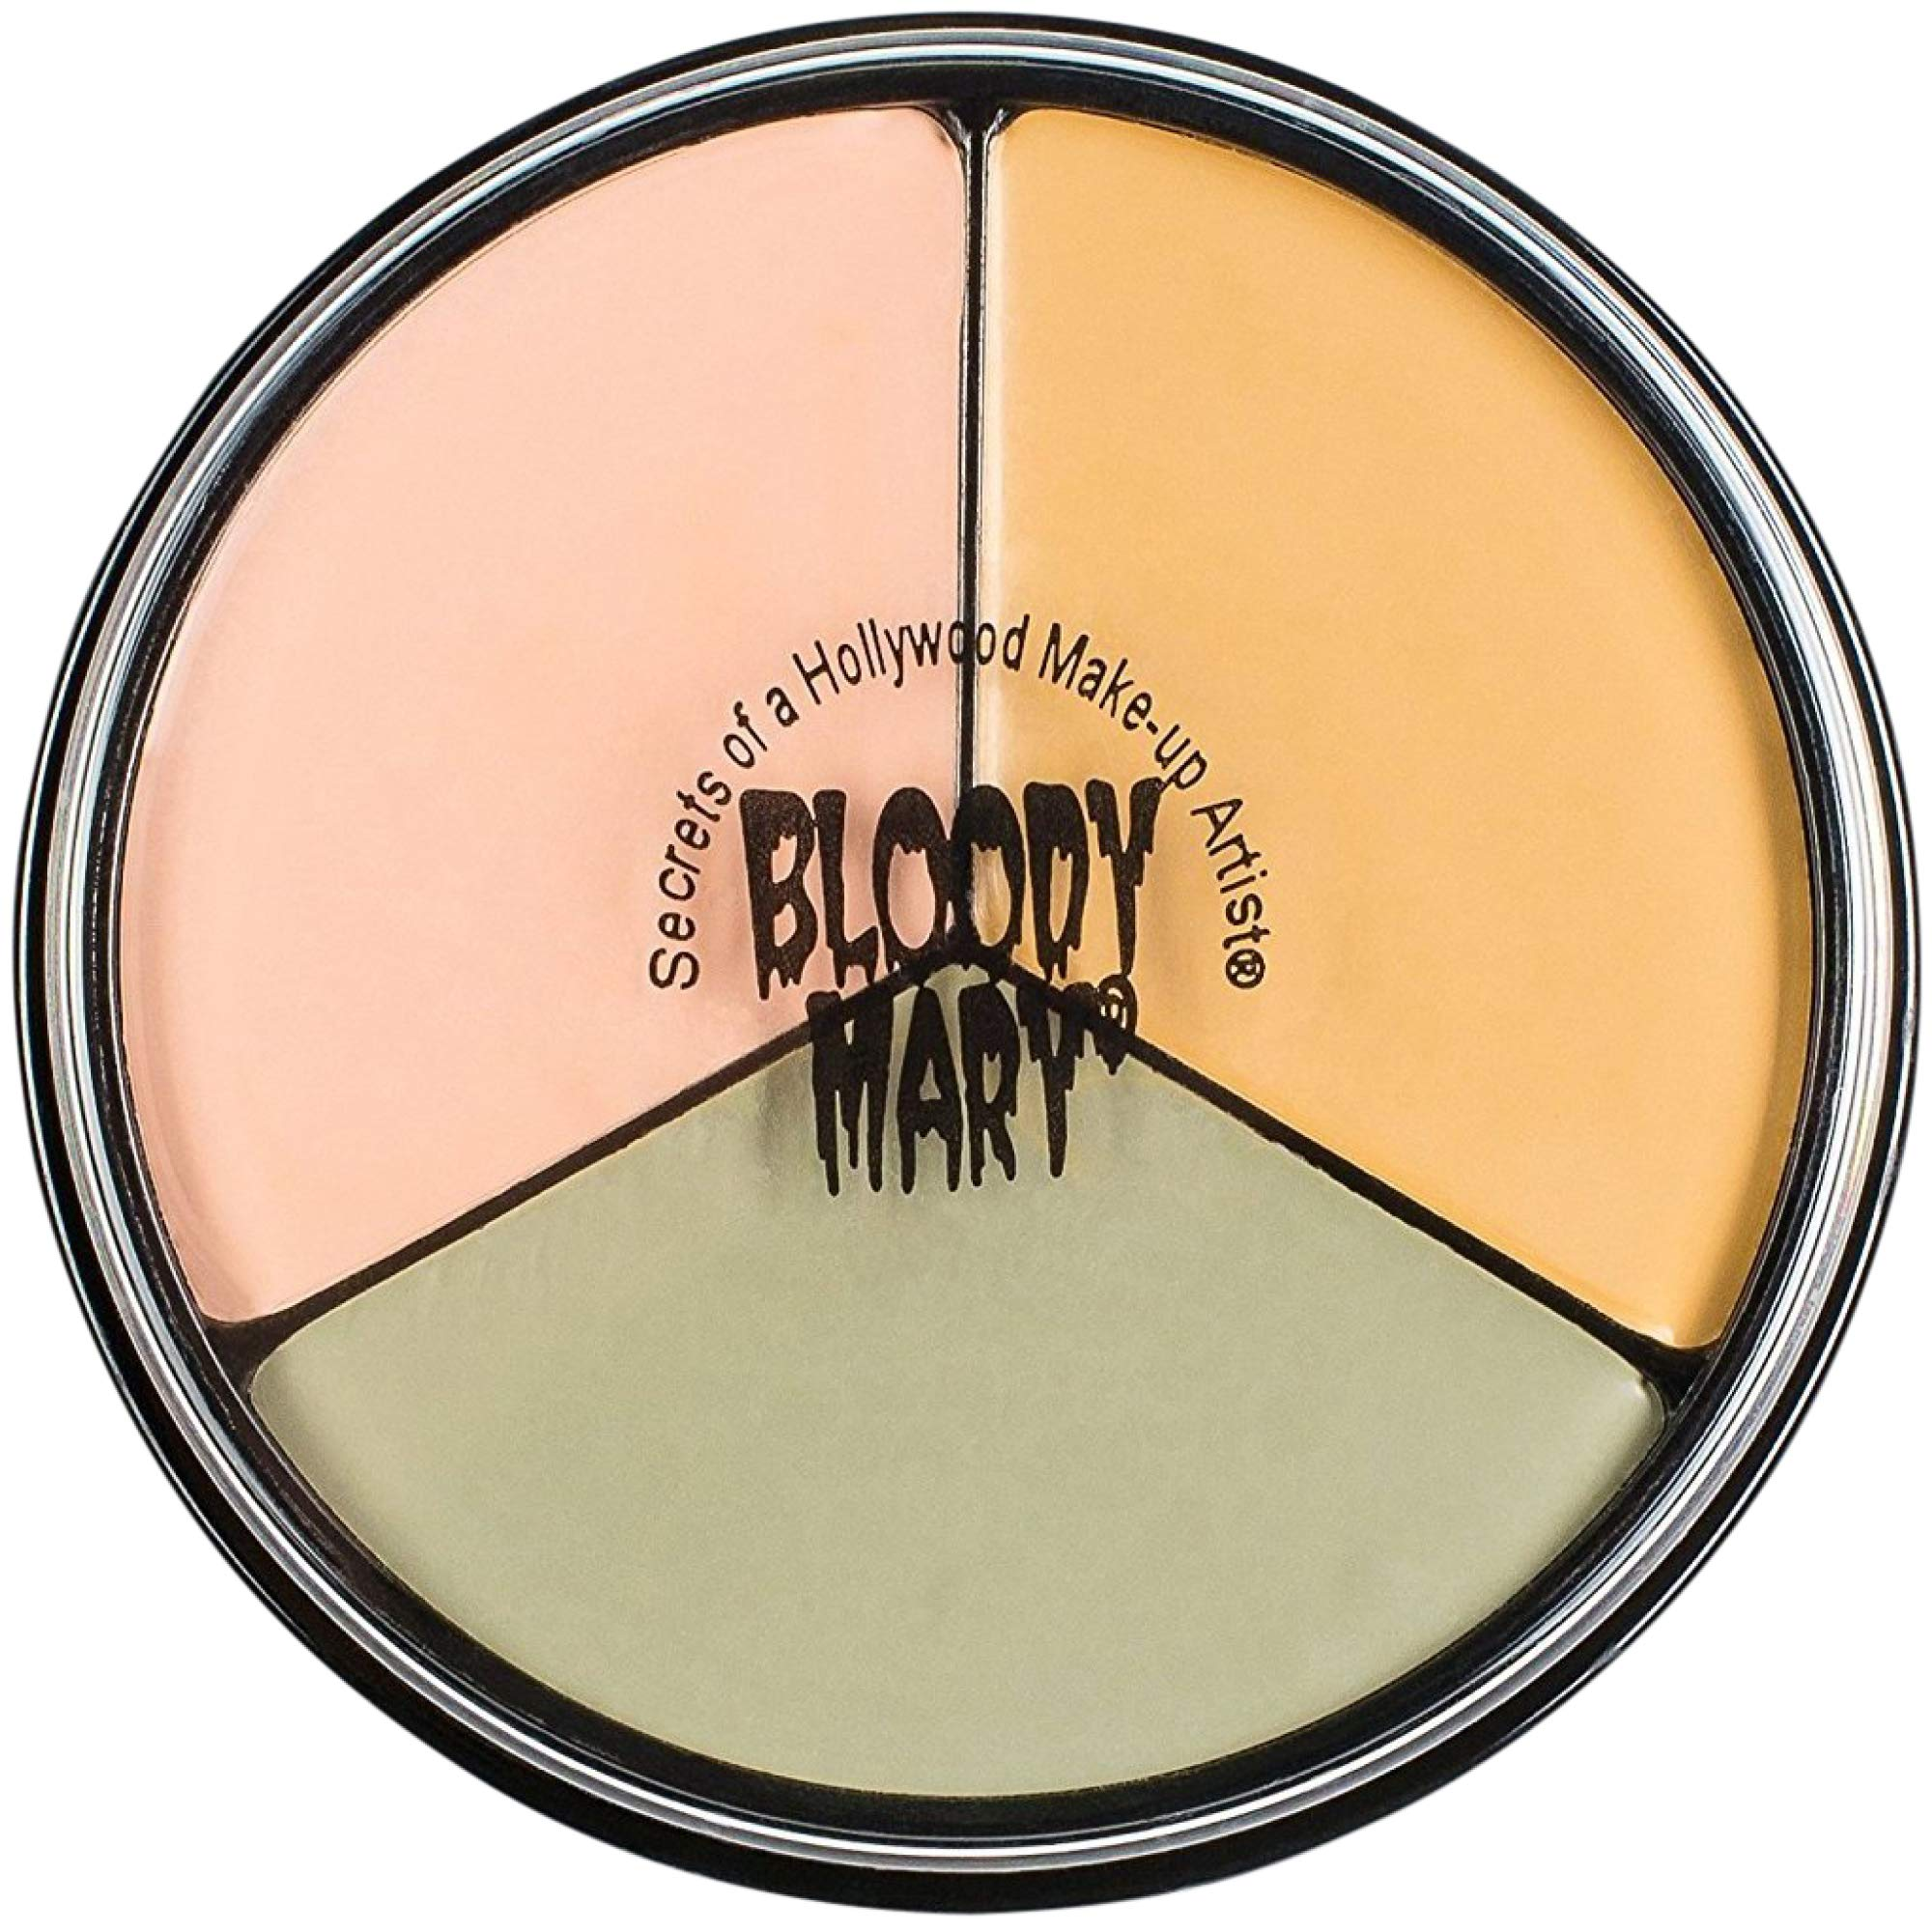 Bloody Mary Tri Color Wheel Monster Makeup Cream - Death Pale, Flesh and Vampire Gray for Theater, Costume or Halloween Zombie and Monster Dress Up - 1.3oz by Bloody Mary